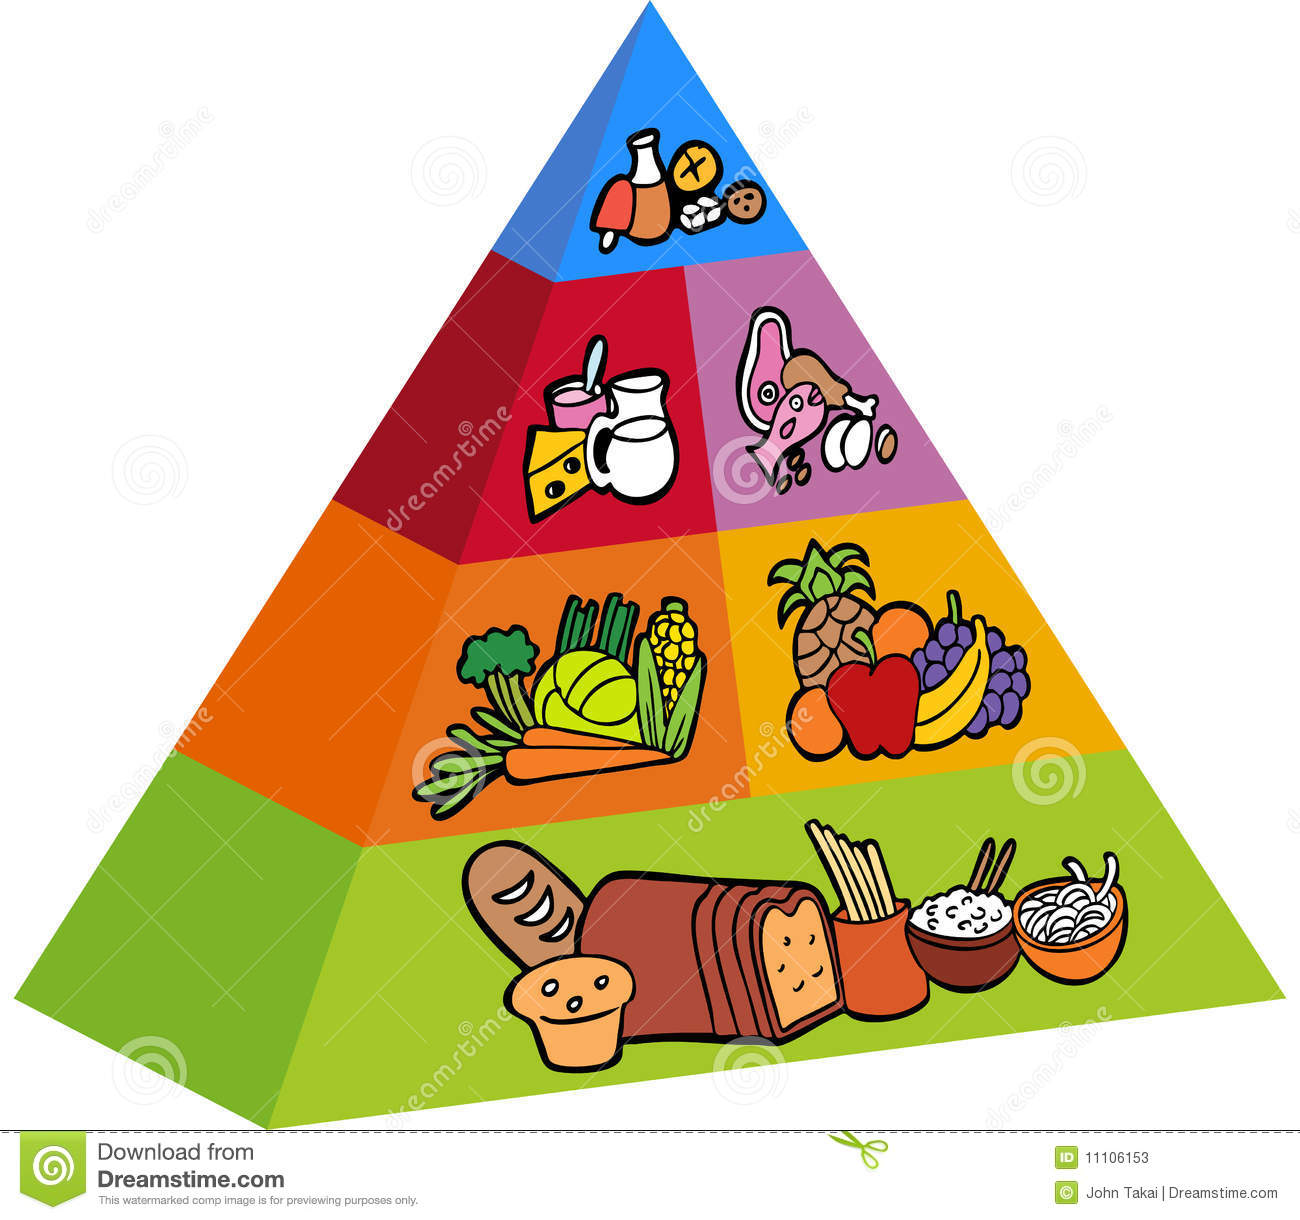 3d pyramid clipart clipart suggest healthy food pyramid clipart food pyramid clipart